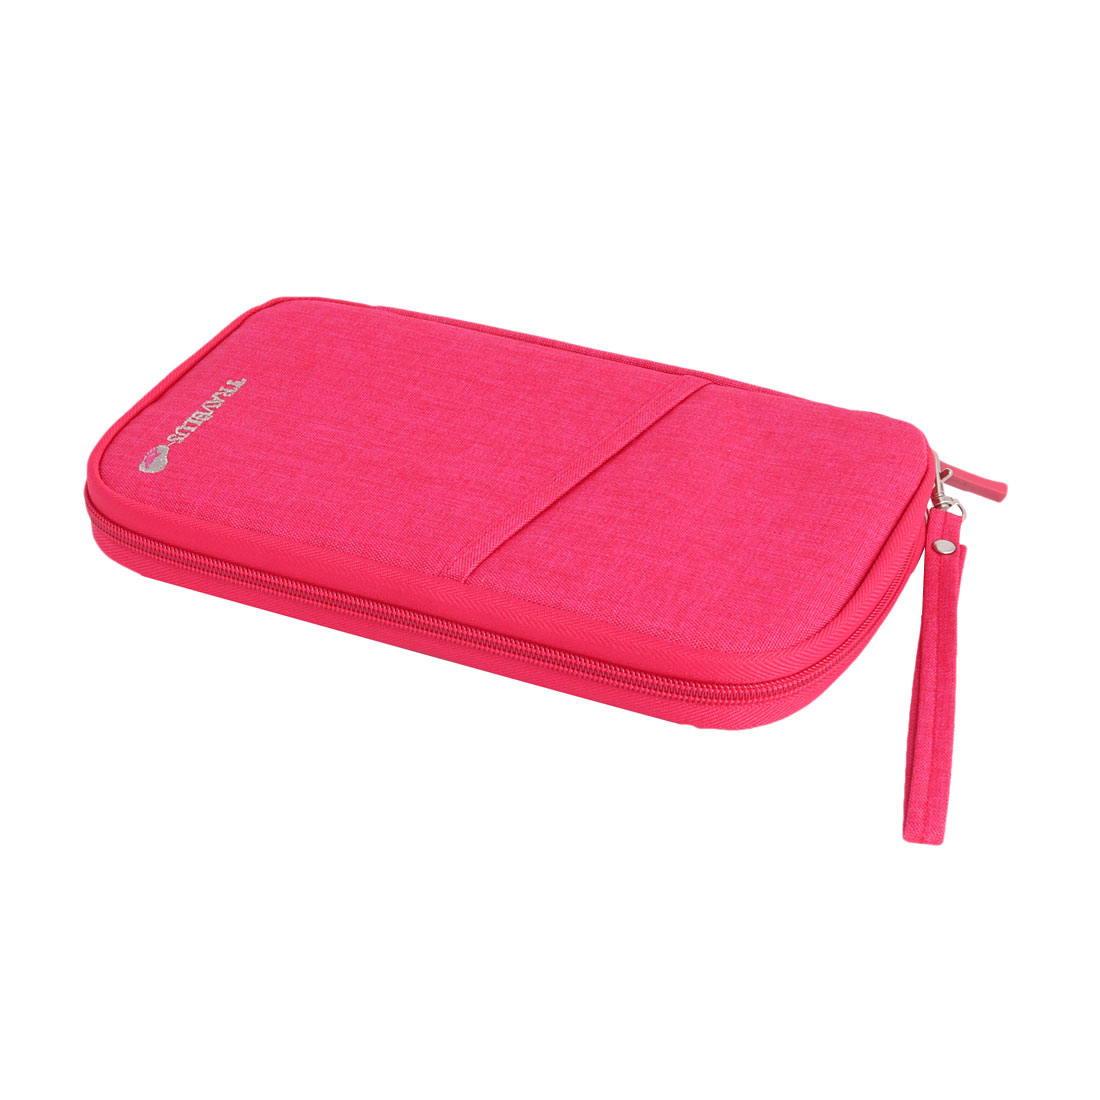 Travel Journey Passport Credit Card Holder Cash Phone Organizer Bag Fuchsia